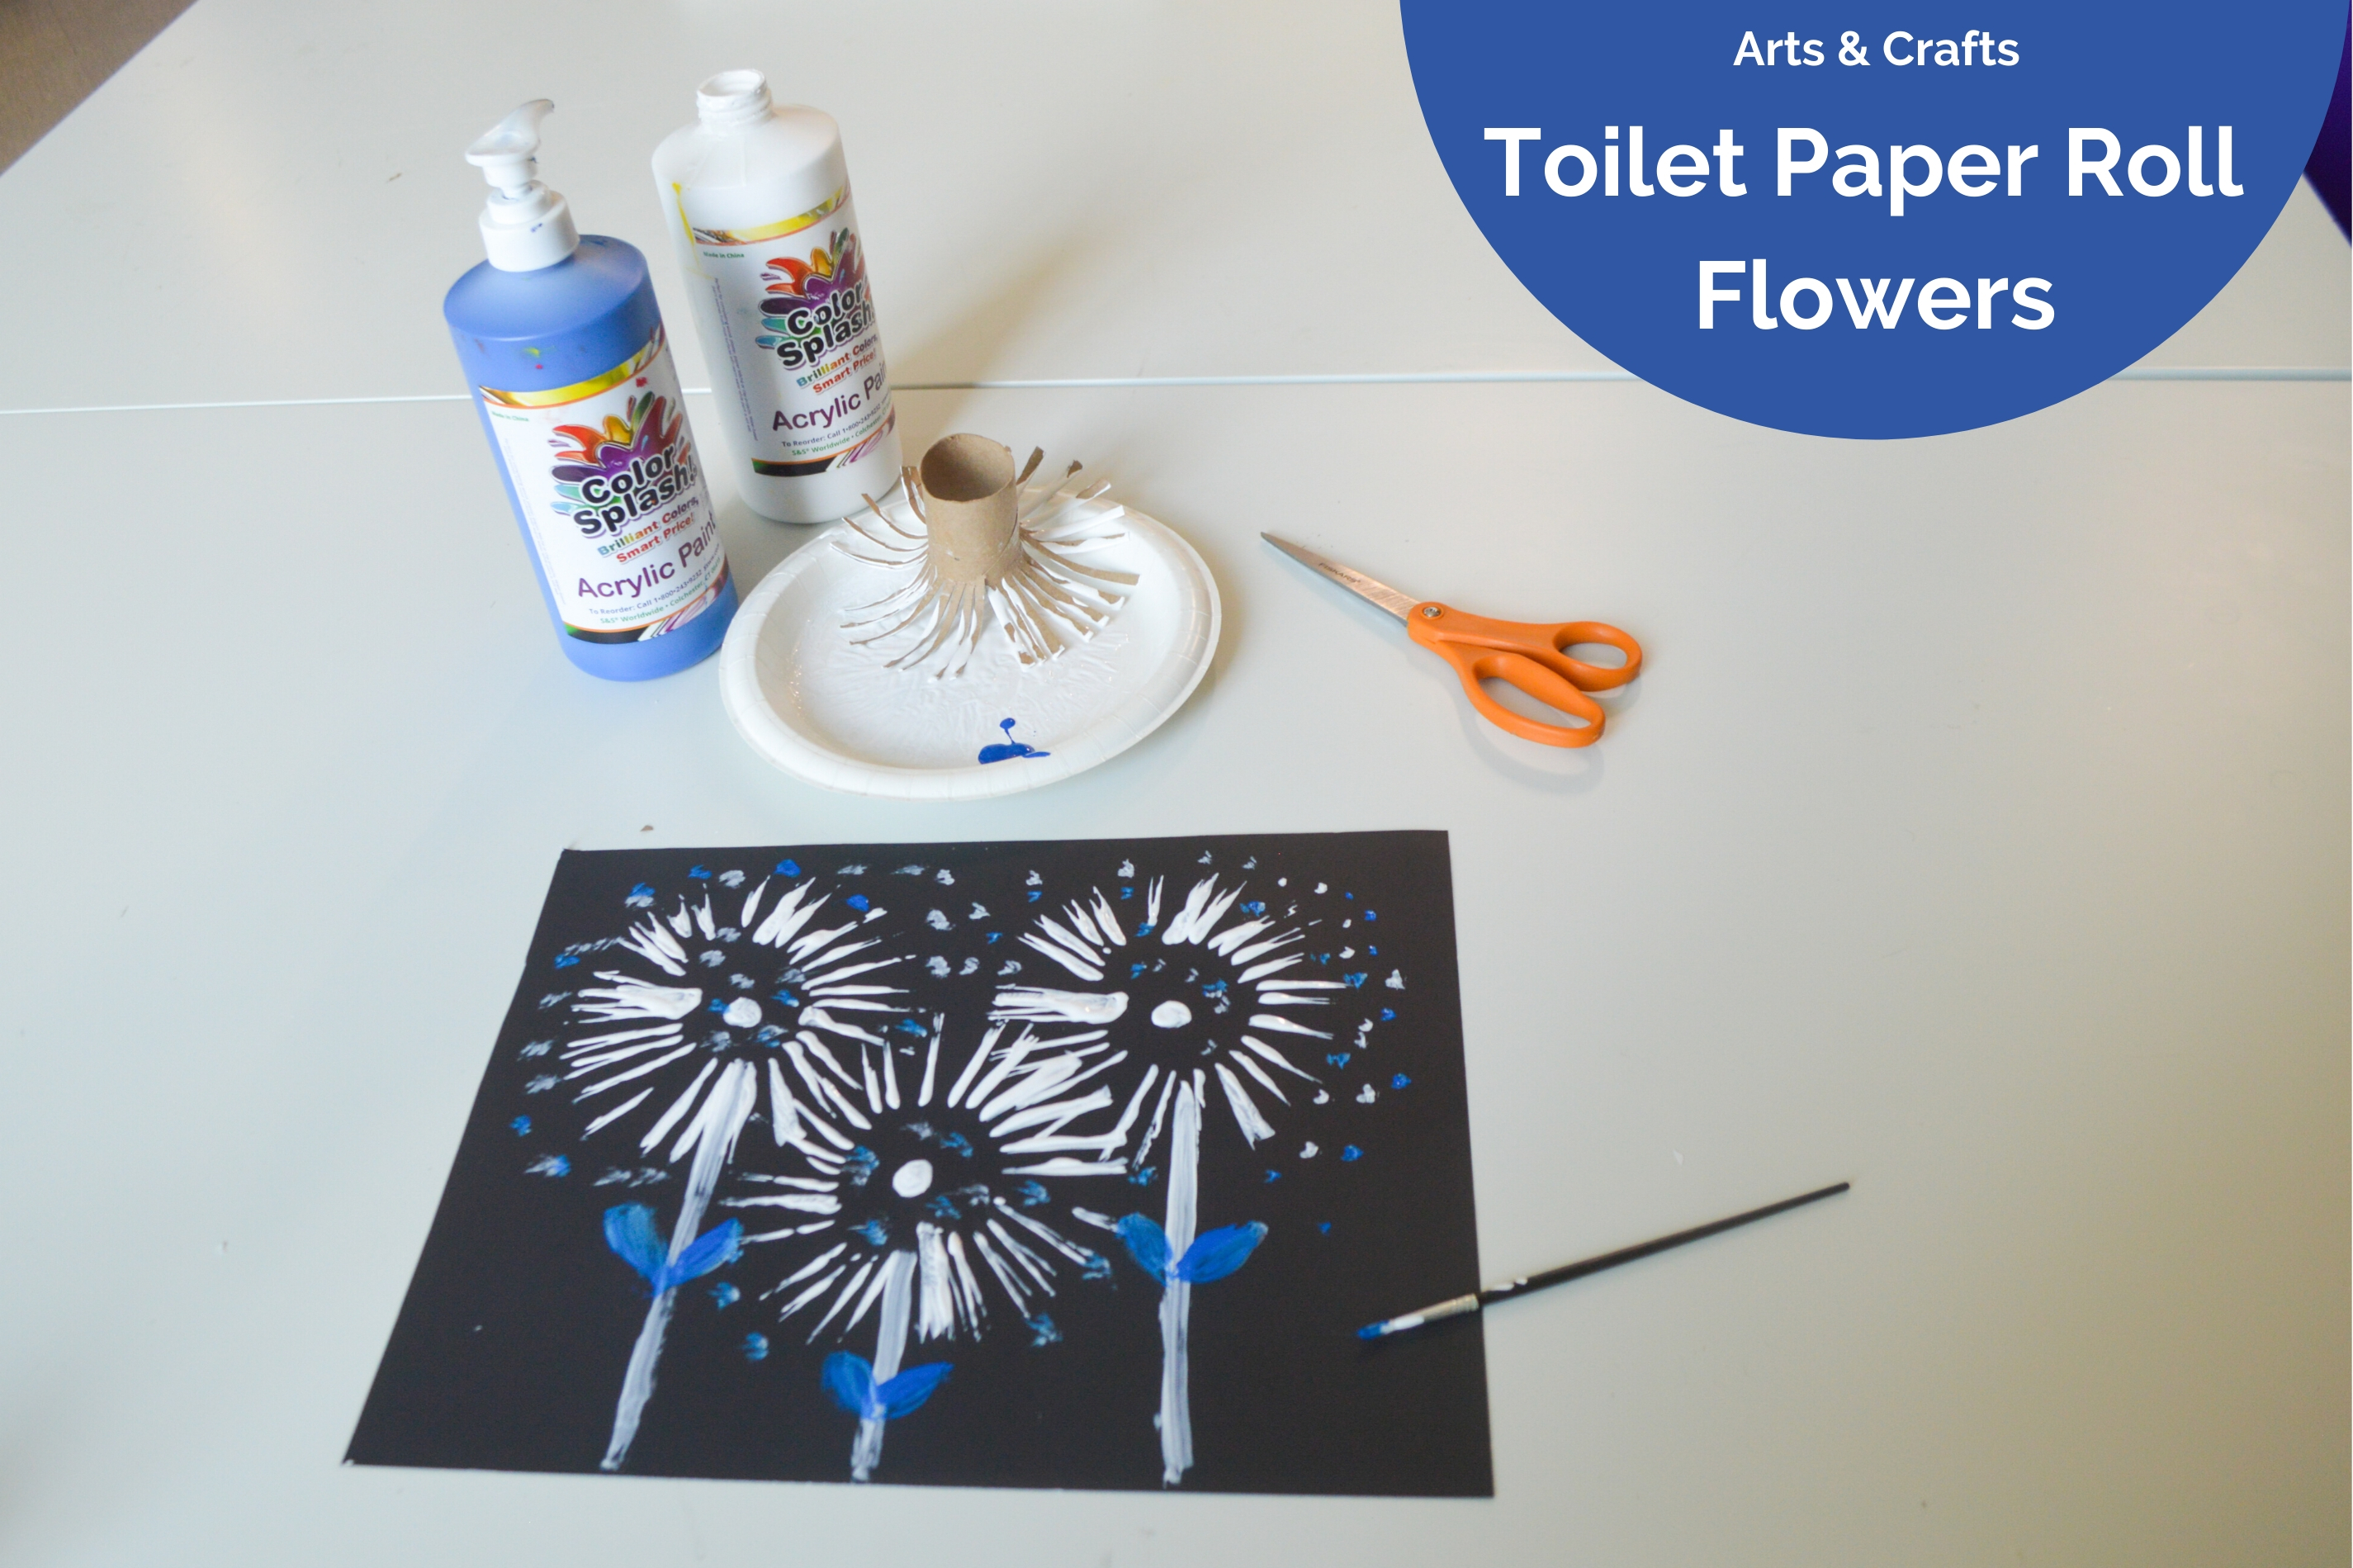 Arts and Crafts: Toilet Paper Roll Flowers